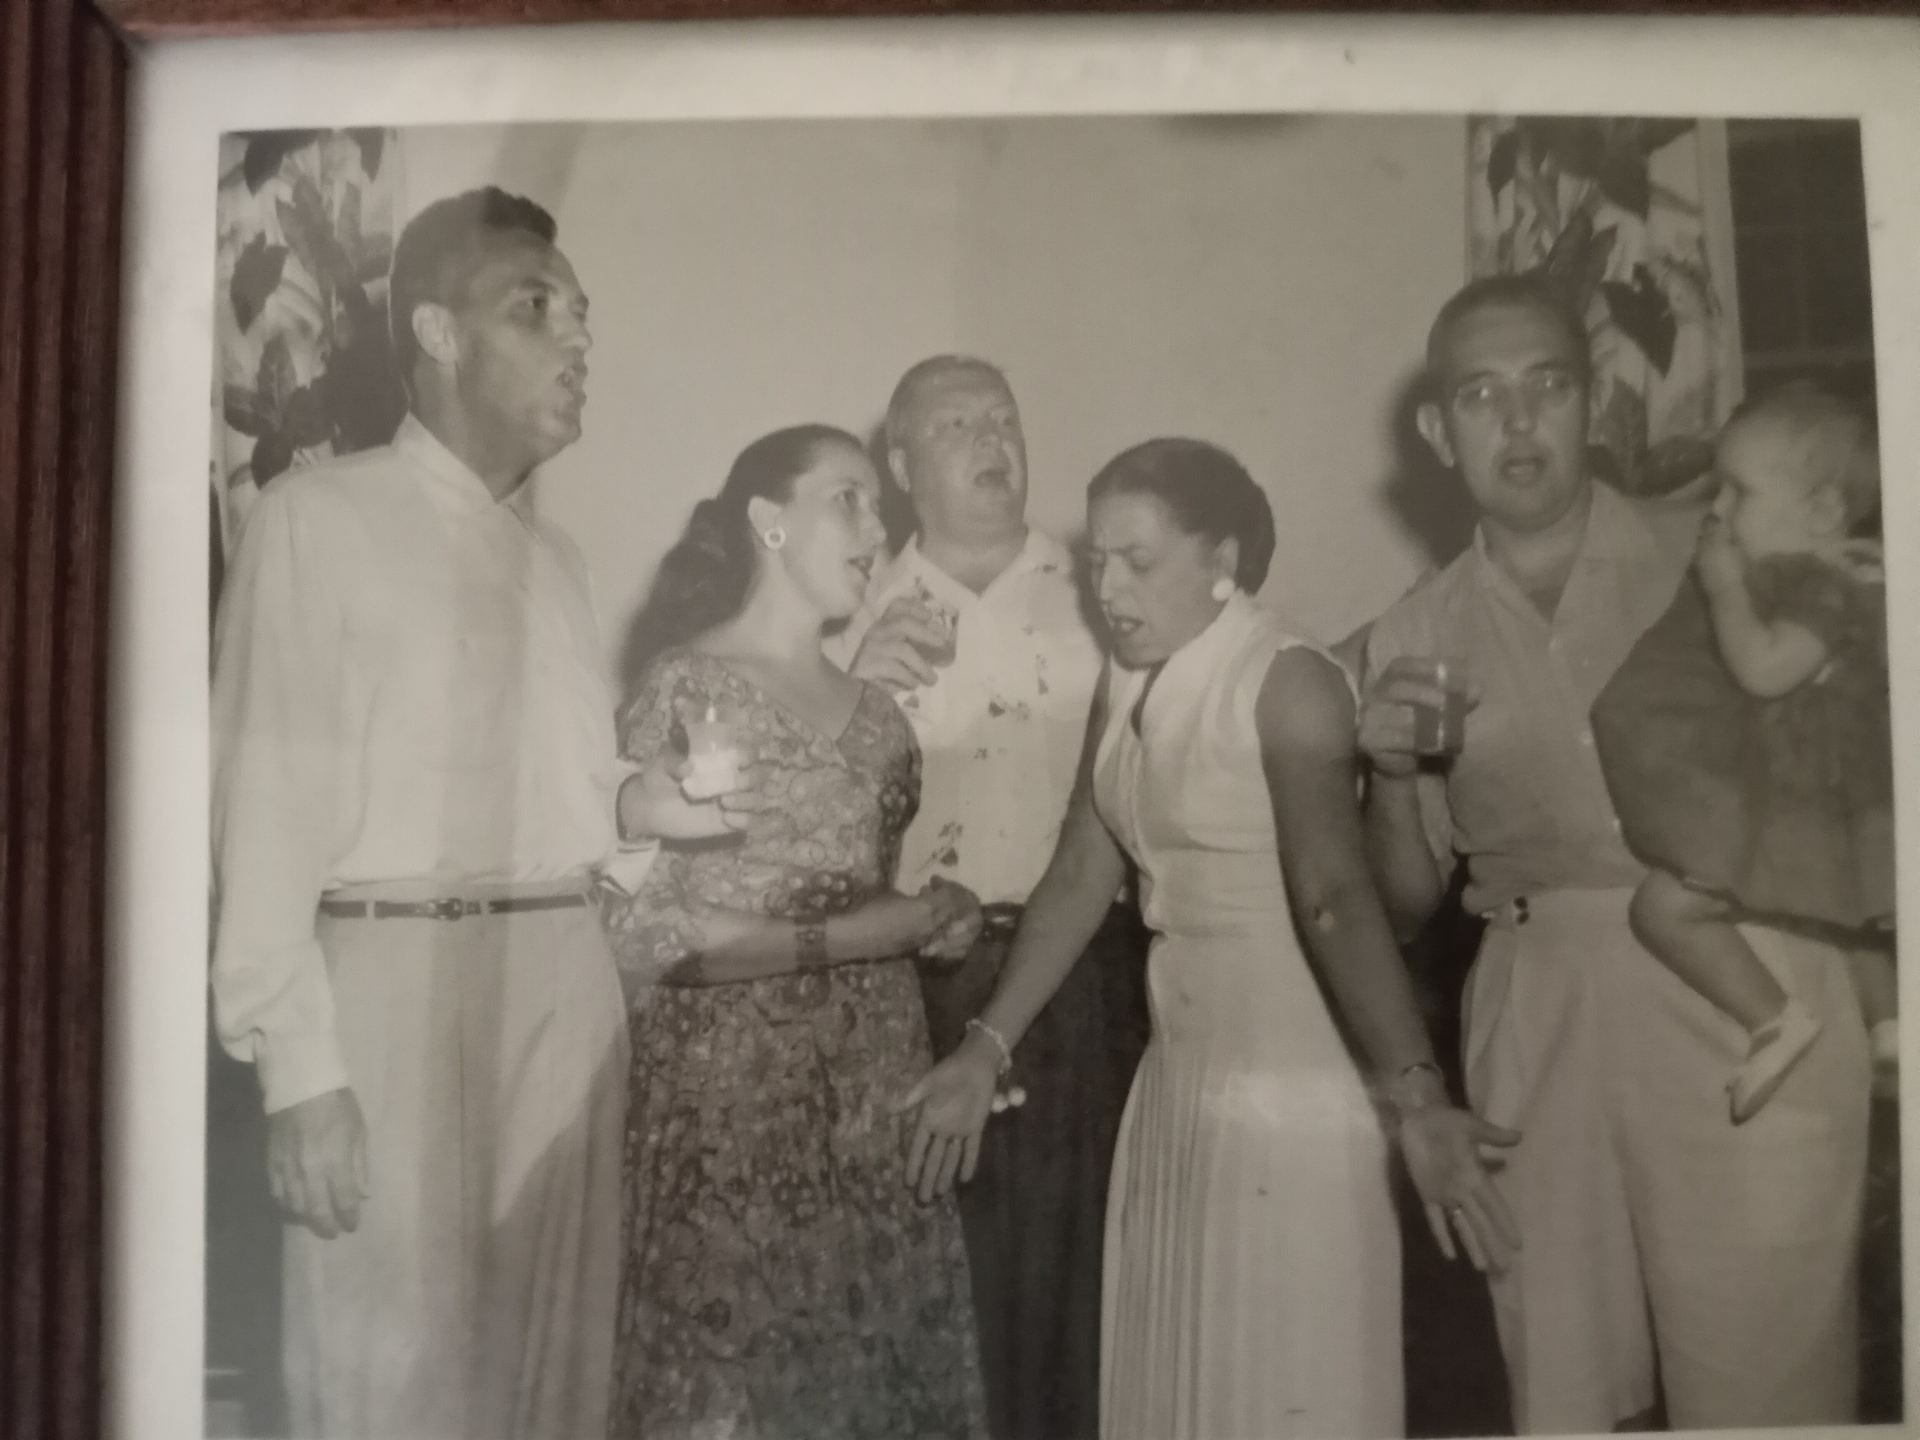 1956 - A little singing before going to dinner. Howard Kemper, Ruth Sputh, Dixie Highway, Charlotte Hash, Brose Sputh and Sara Sputh (Esser)